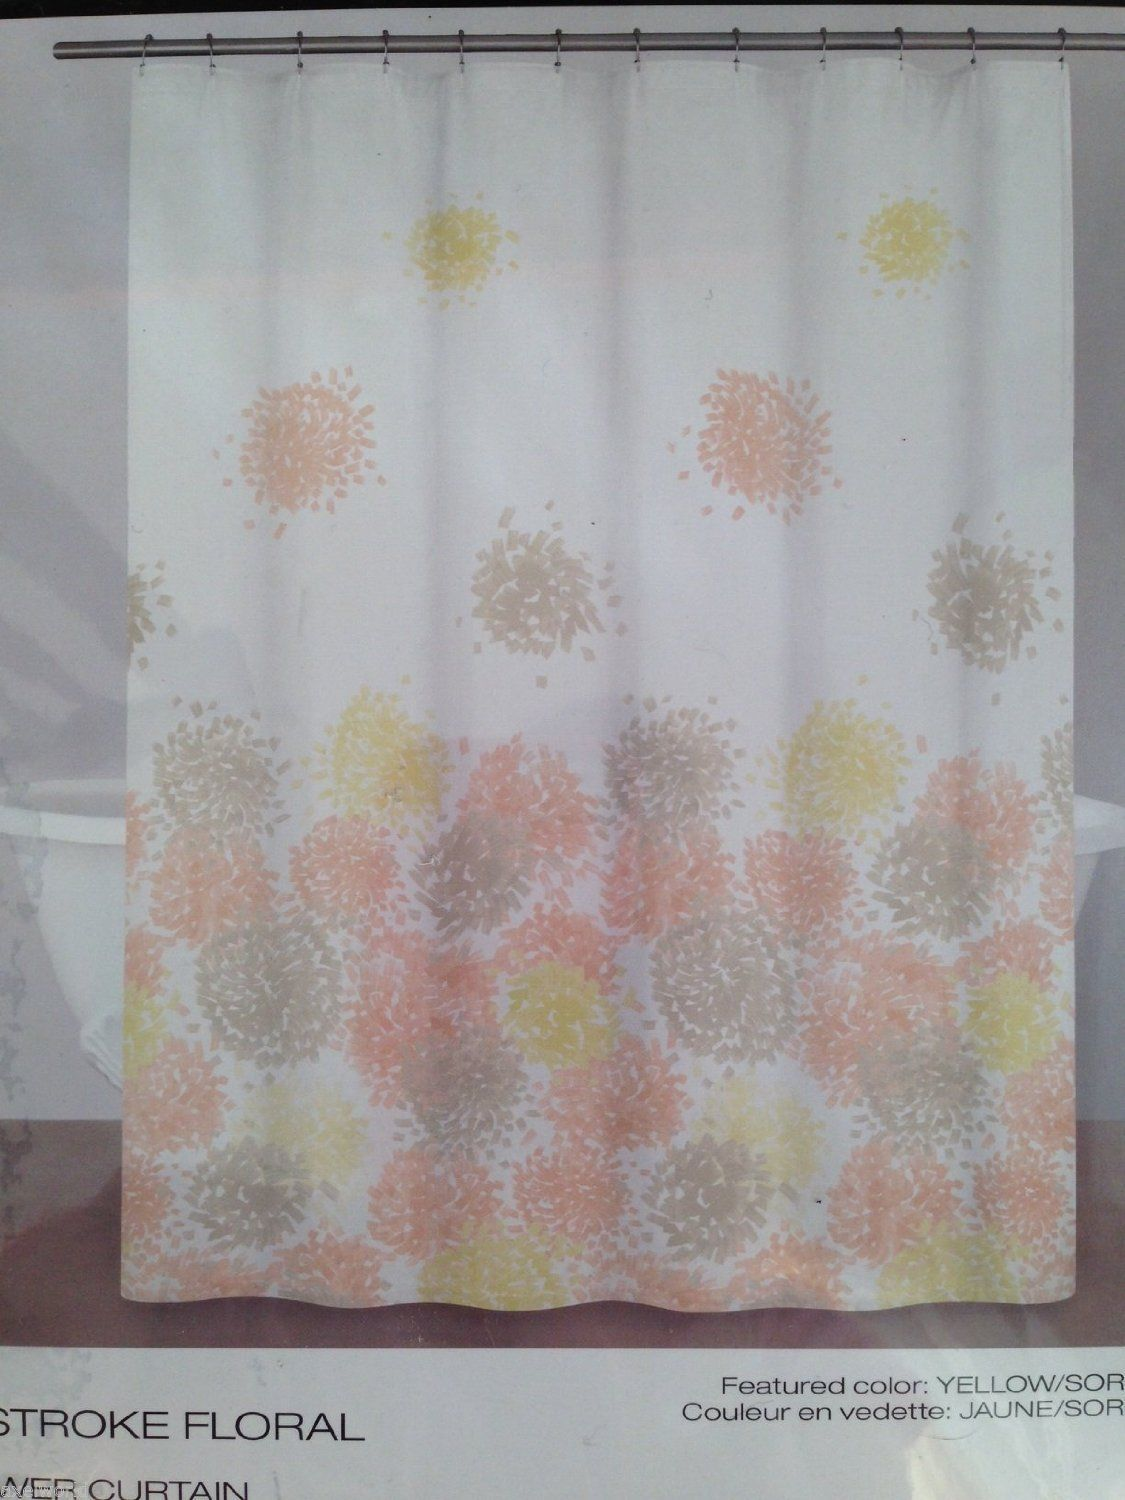 DKNY BRUSHSTROKE FLORAL 1PC SHOWER CURTAIN YELLOW